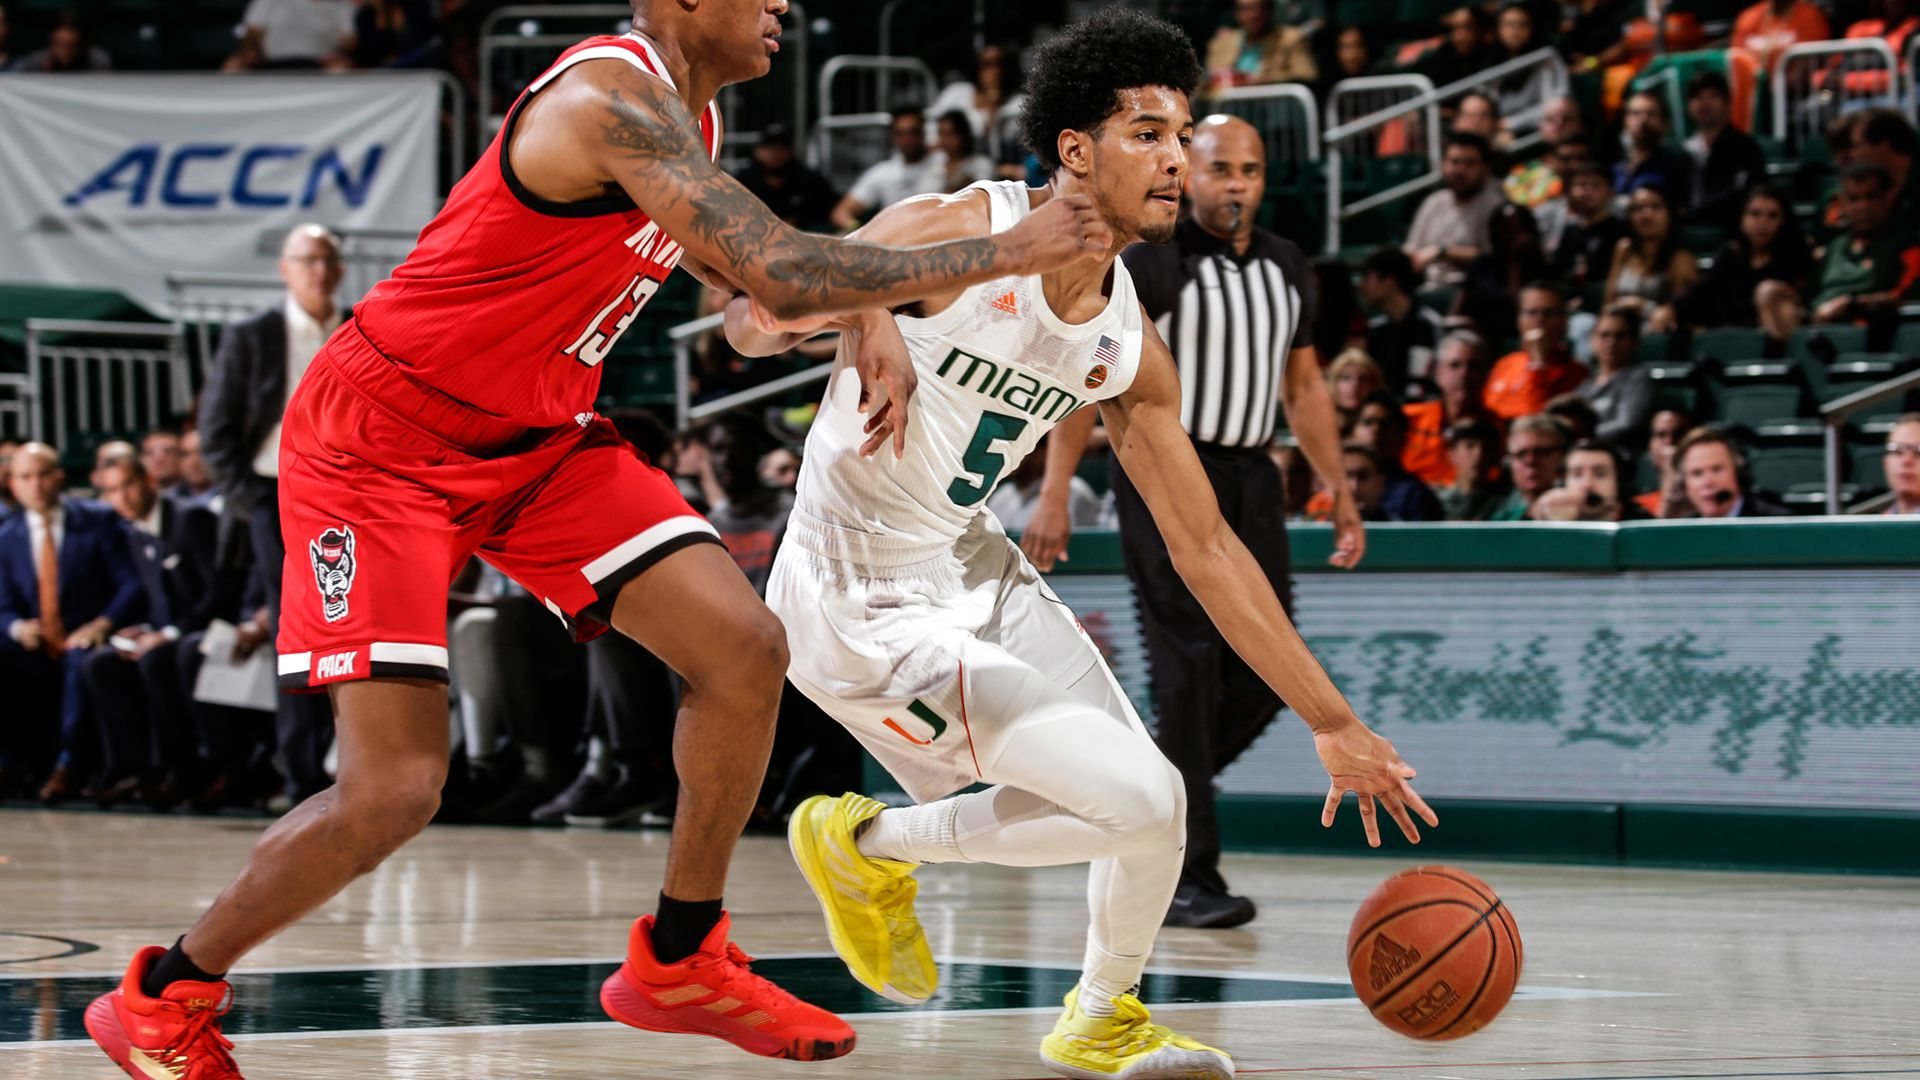 MBB Falls to NC State, 83-72